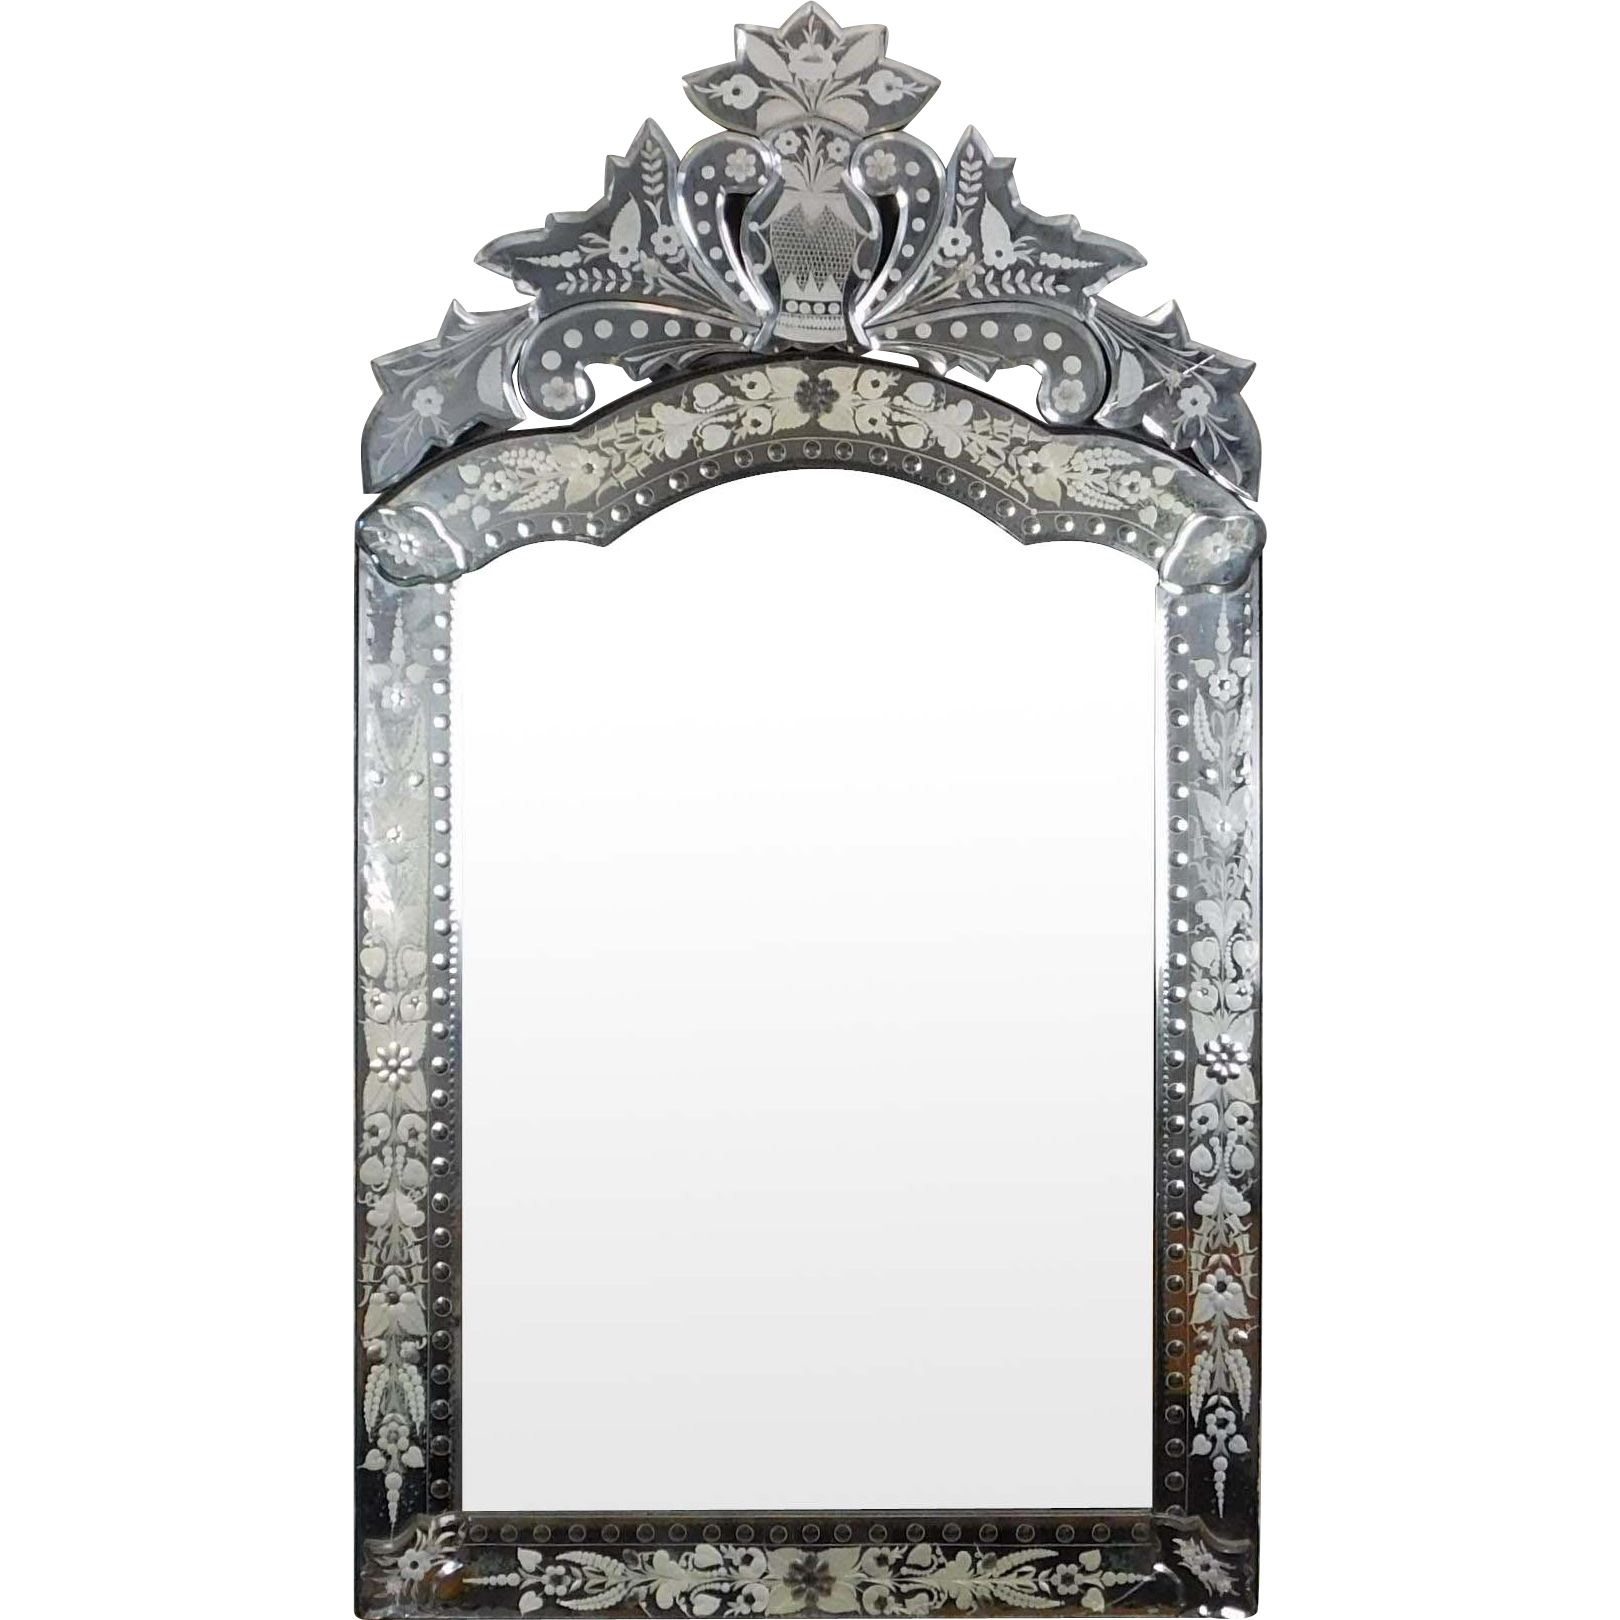 Very Fine Art-Deco 1930s Etched Glass Decorative Venetian Style Hanging Wall Mirror